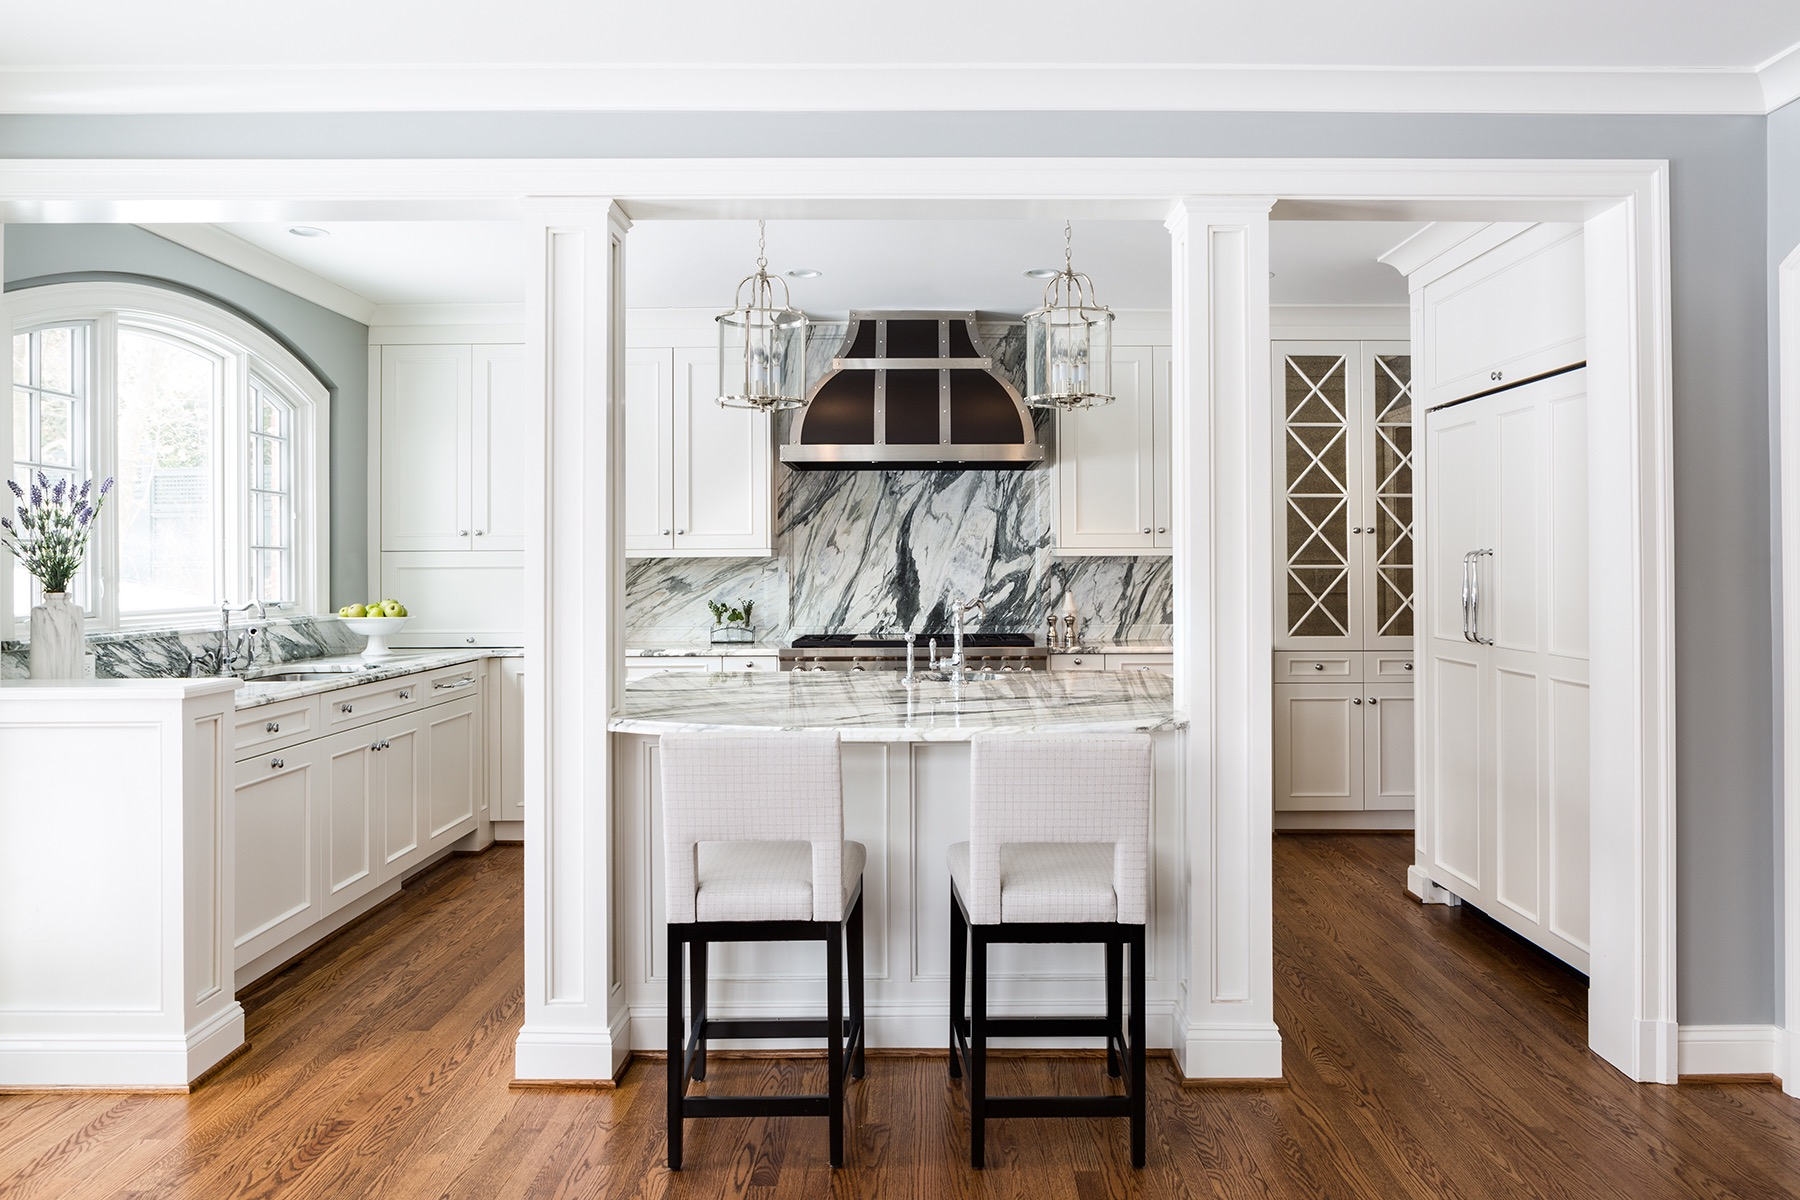 Kitchen island with white barstools, high-contrast white marble counters and backsplash, custom-built columns